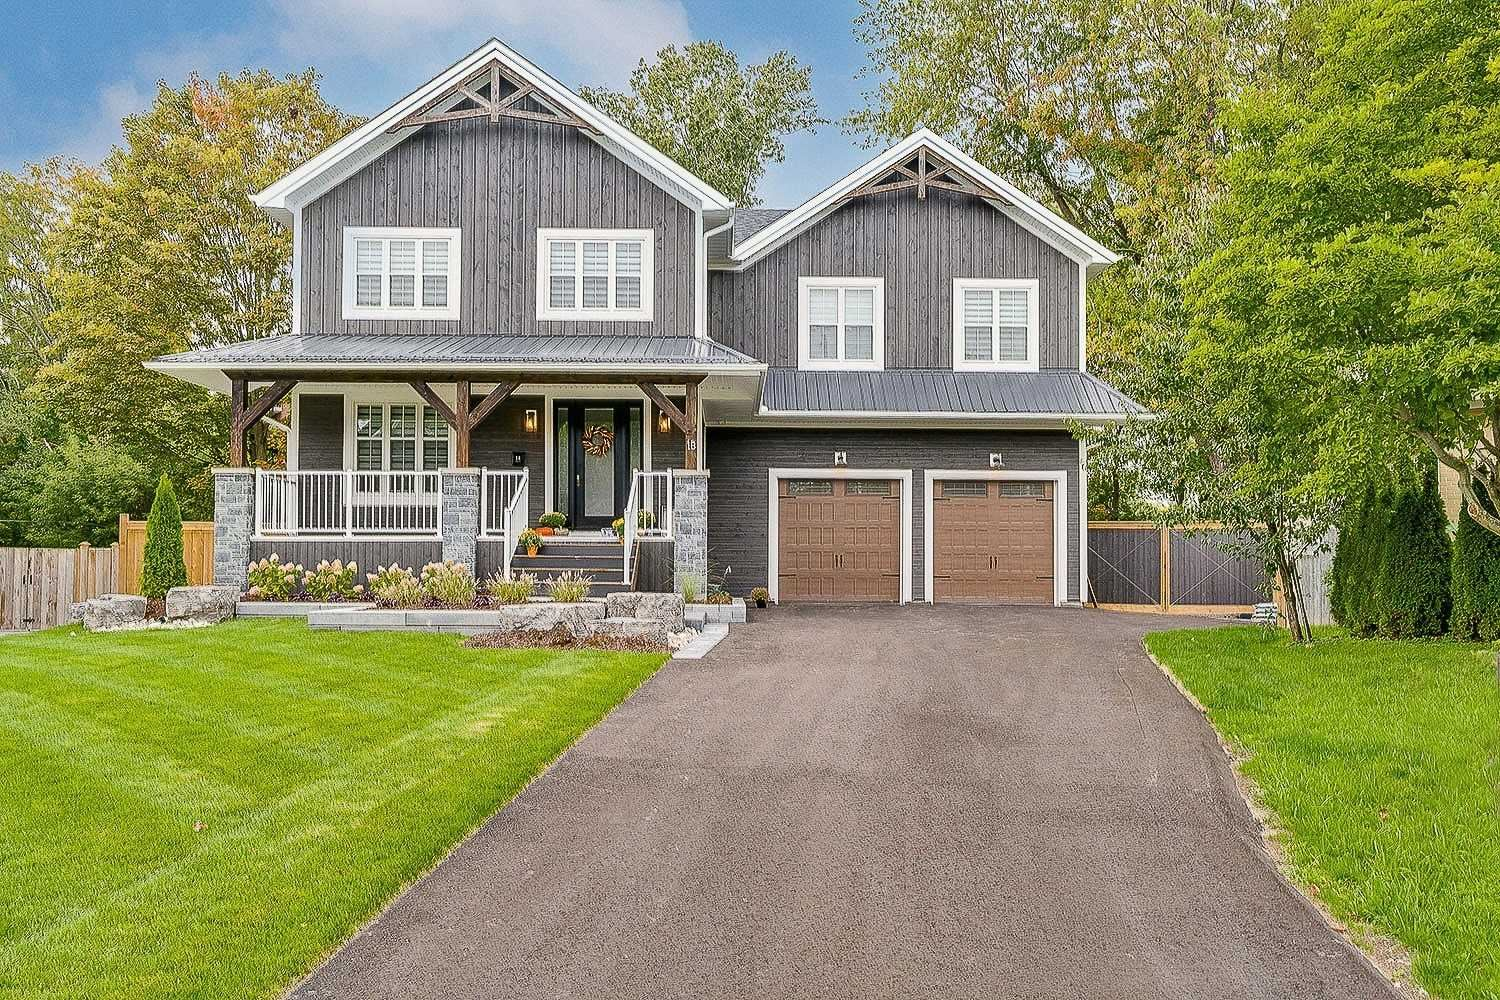 18 Hiley Ave, Ajax, ON L1S6H5 - MLS#: E5403354